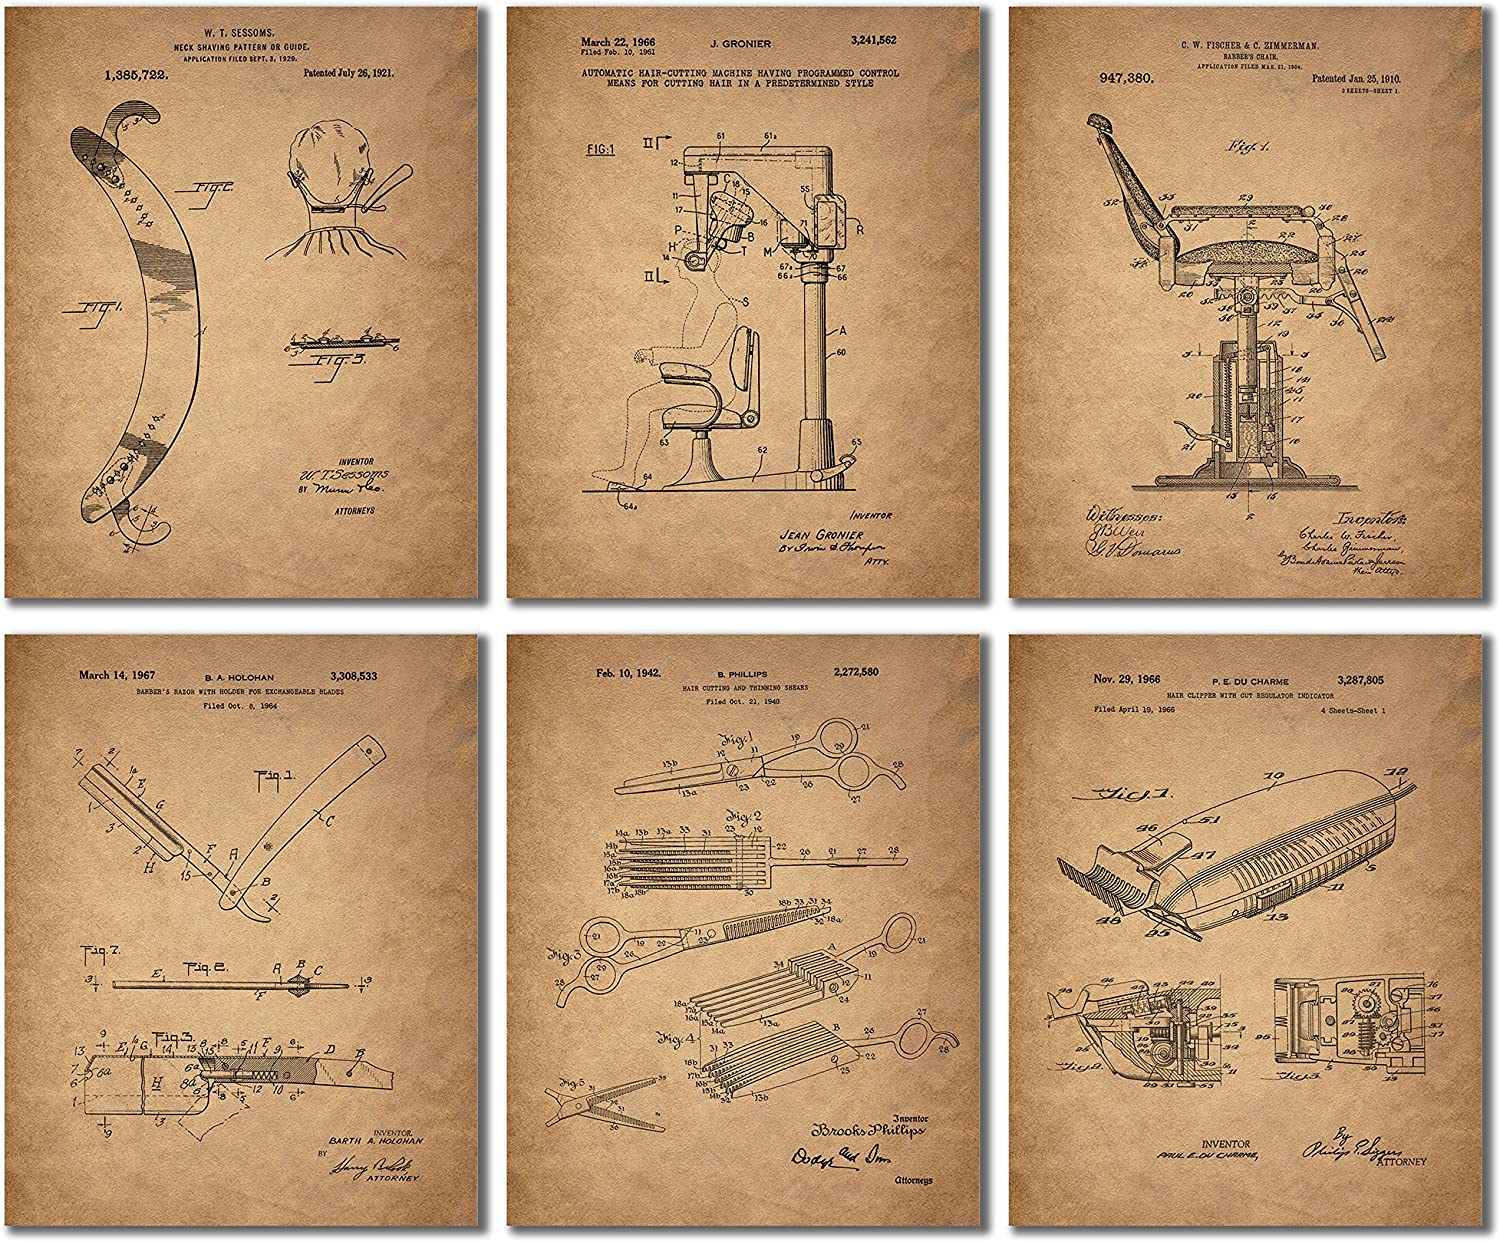 Barber Patent Wall Art Prints - Set of 6 (8 inches by 10 inches) Vintage Replica Photos